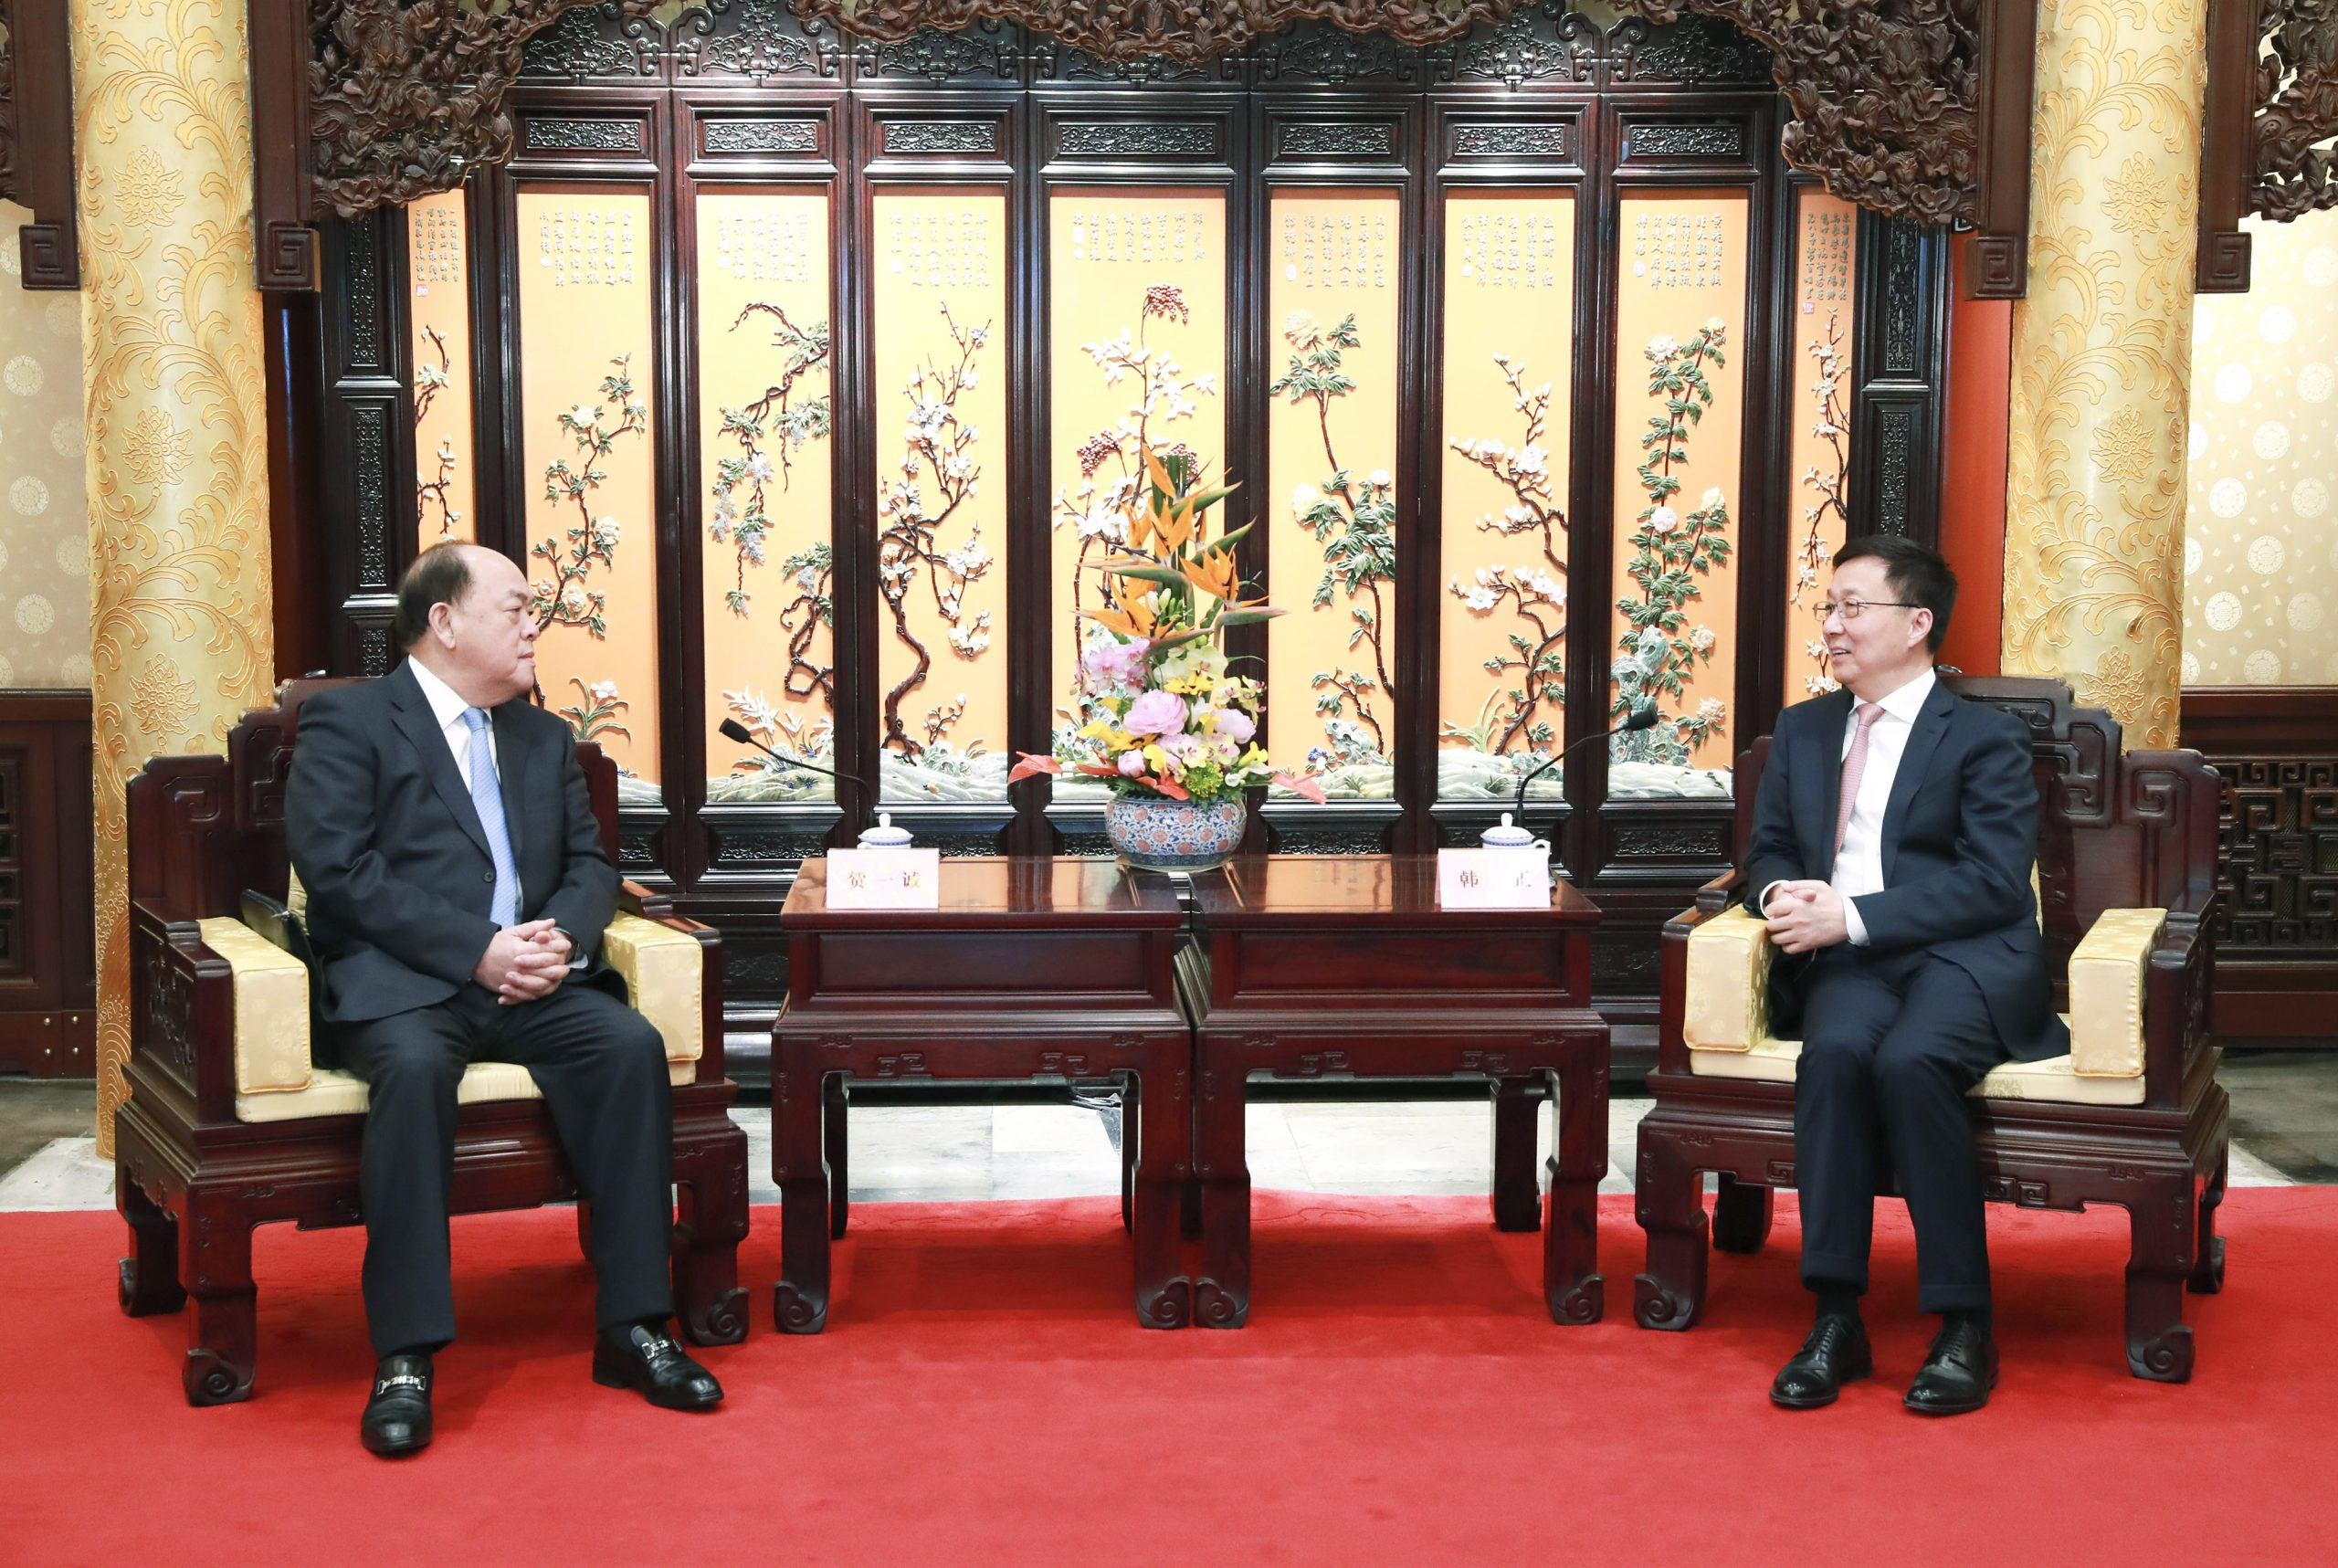 CHINA-BEIJING-HAN ZHENG-MACAO-MEETING (CN)